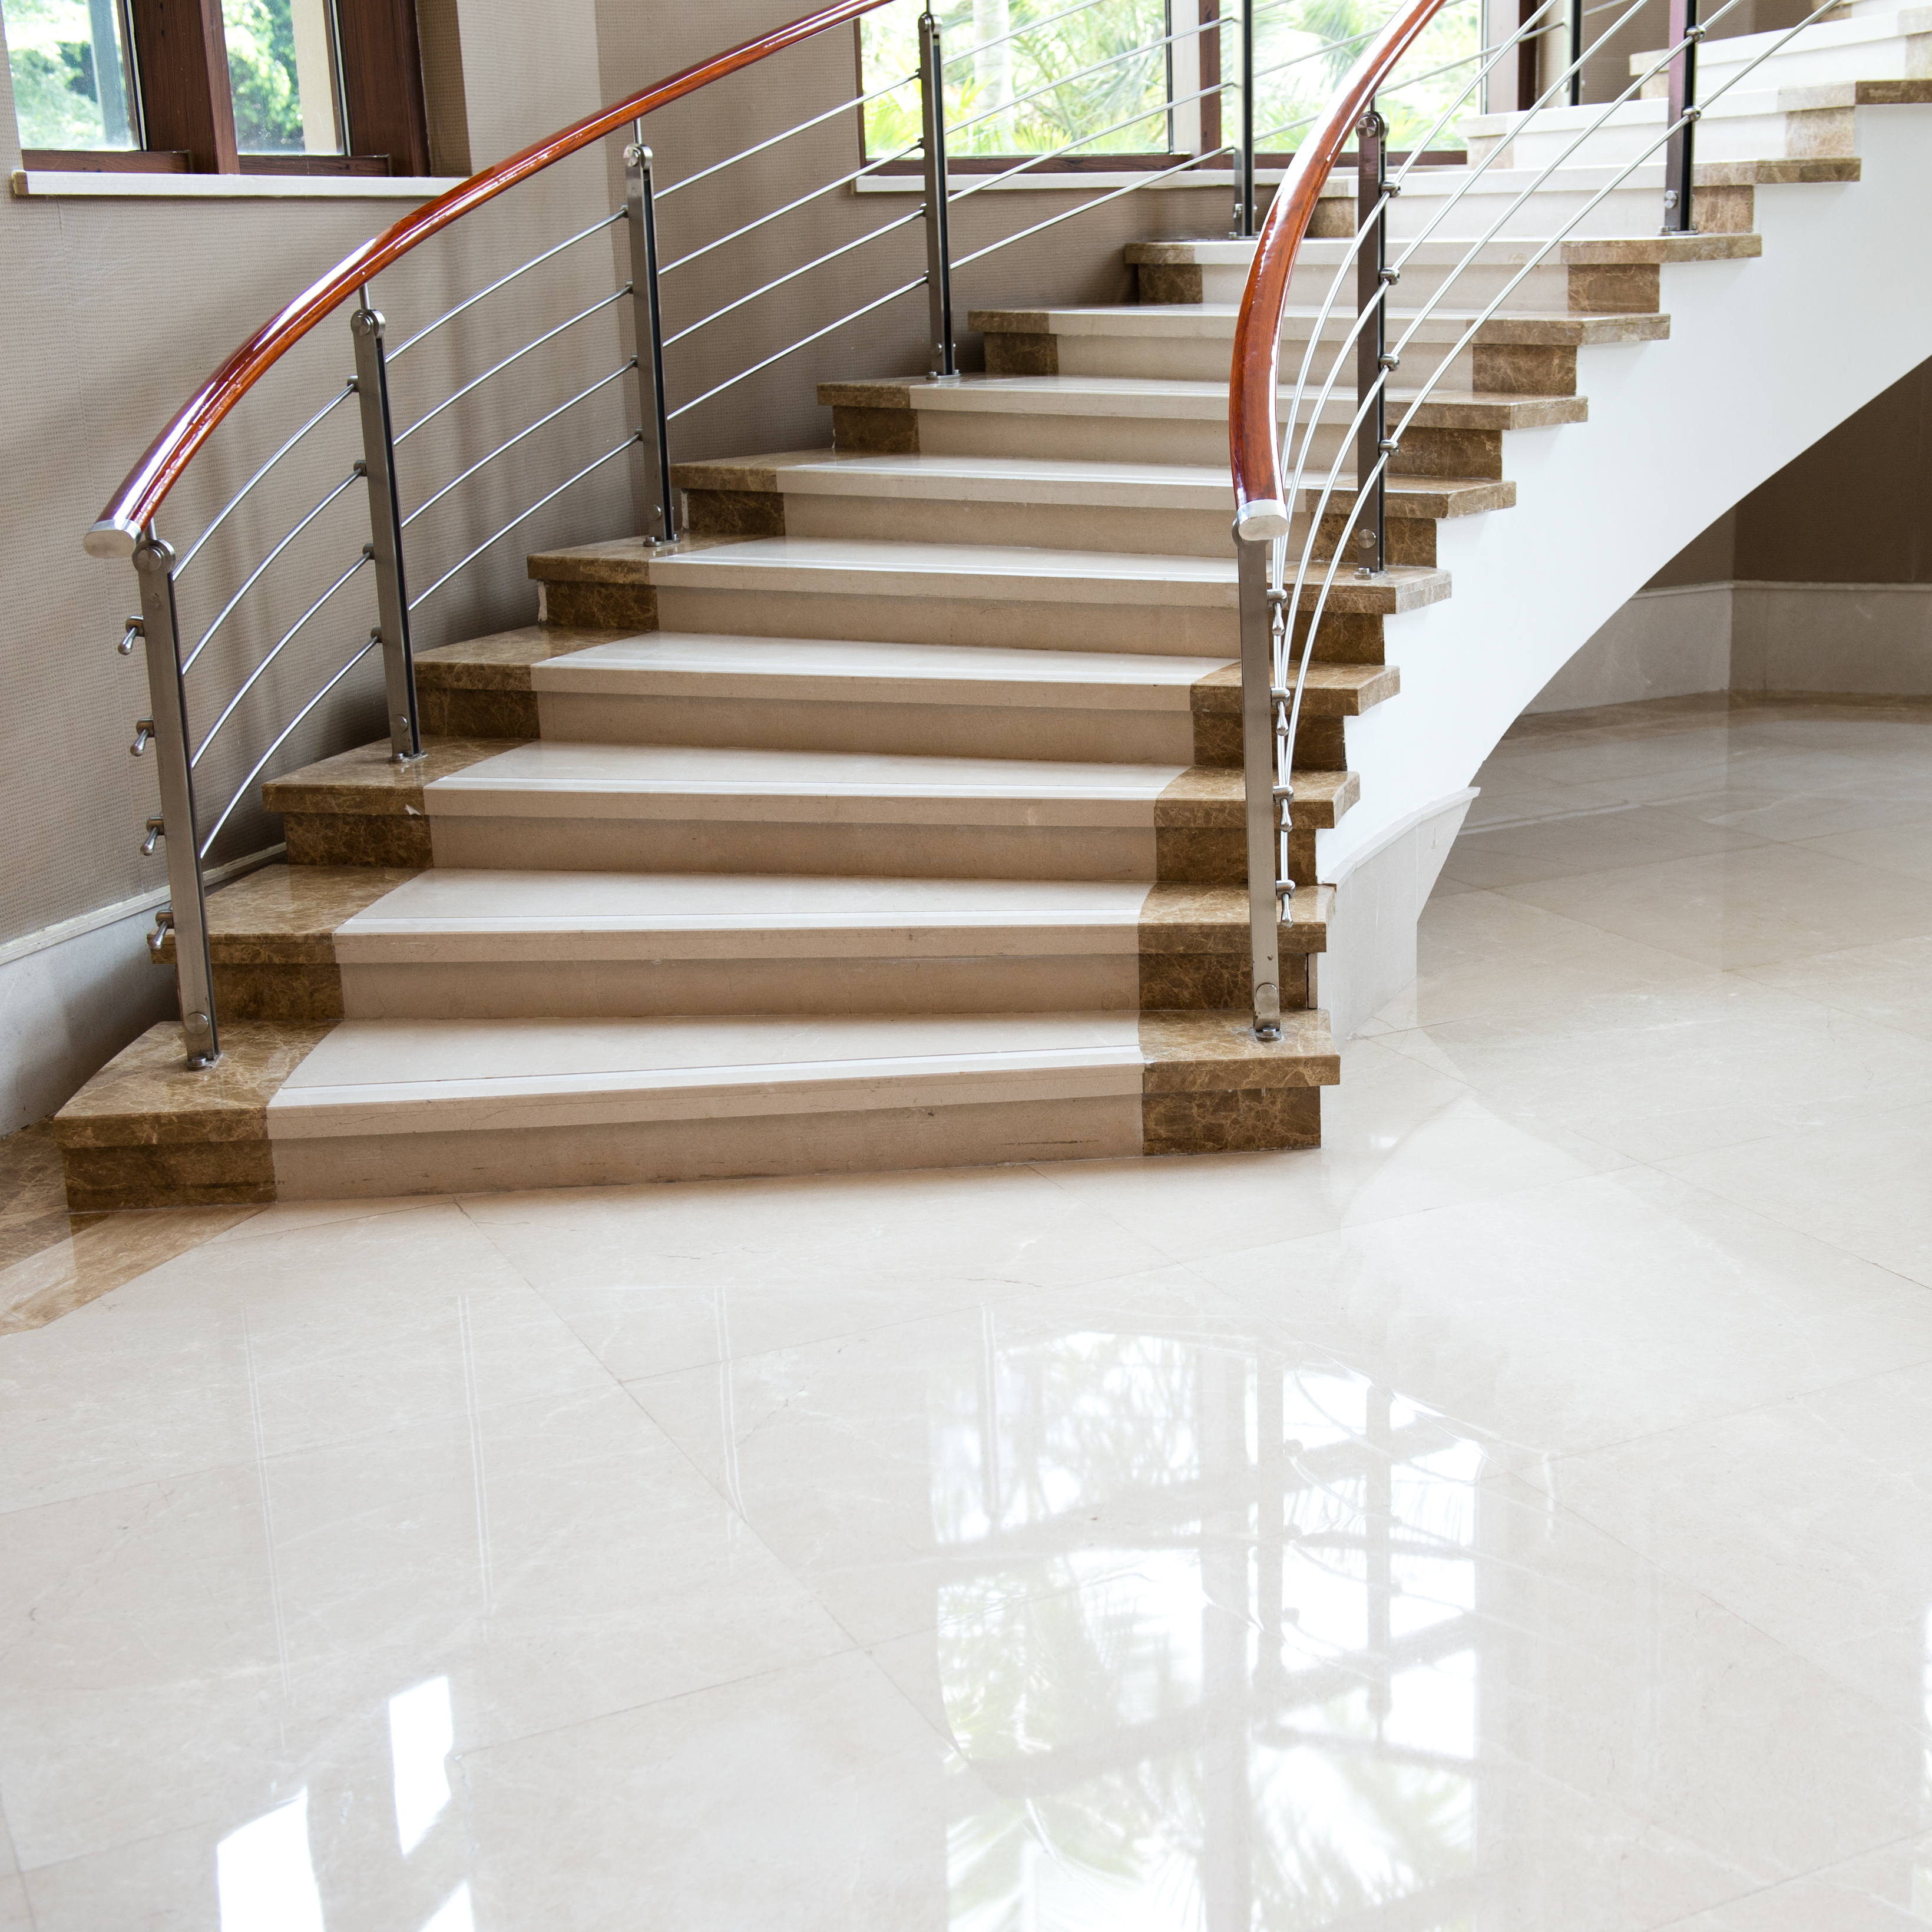 At Warrior Floor Care We Re Experts In Taking Of Marble Floors Countertops Walls Showers